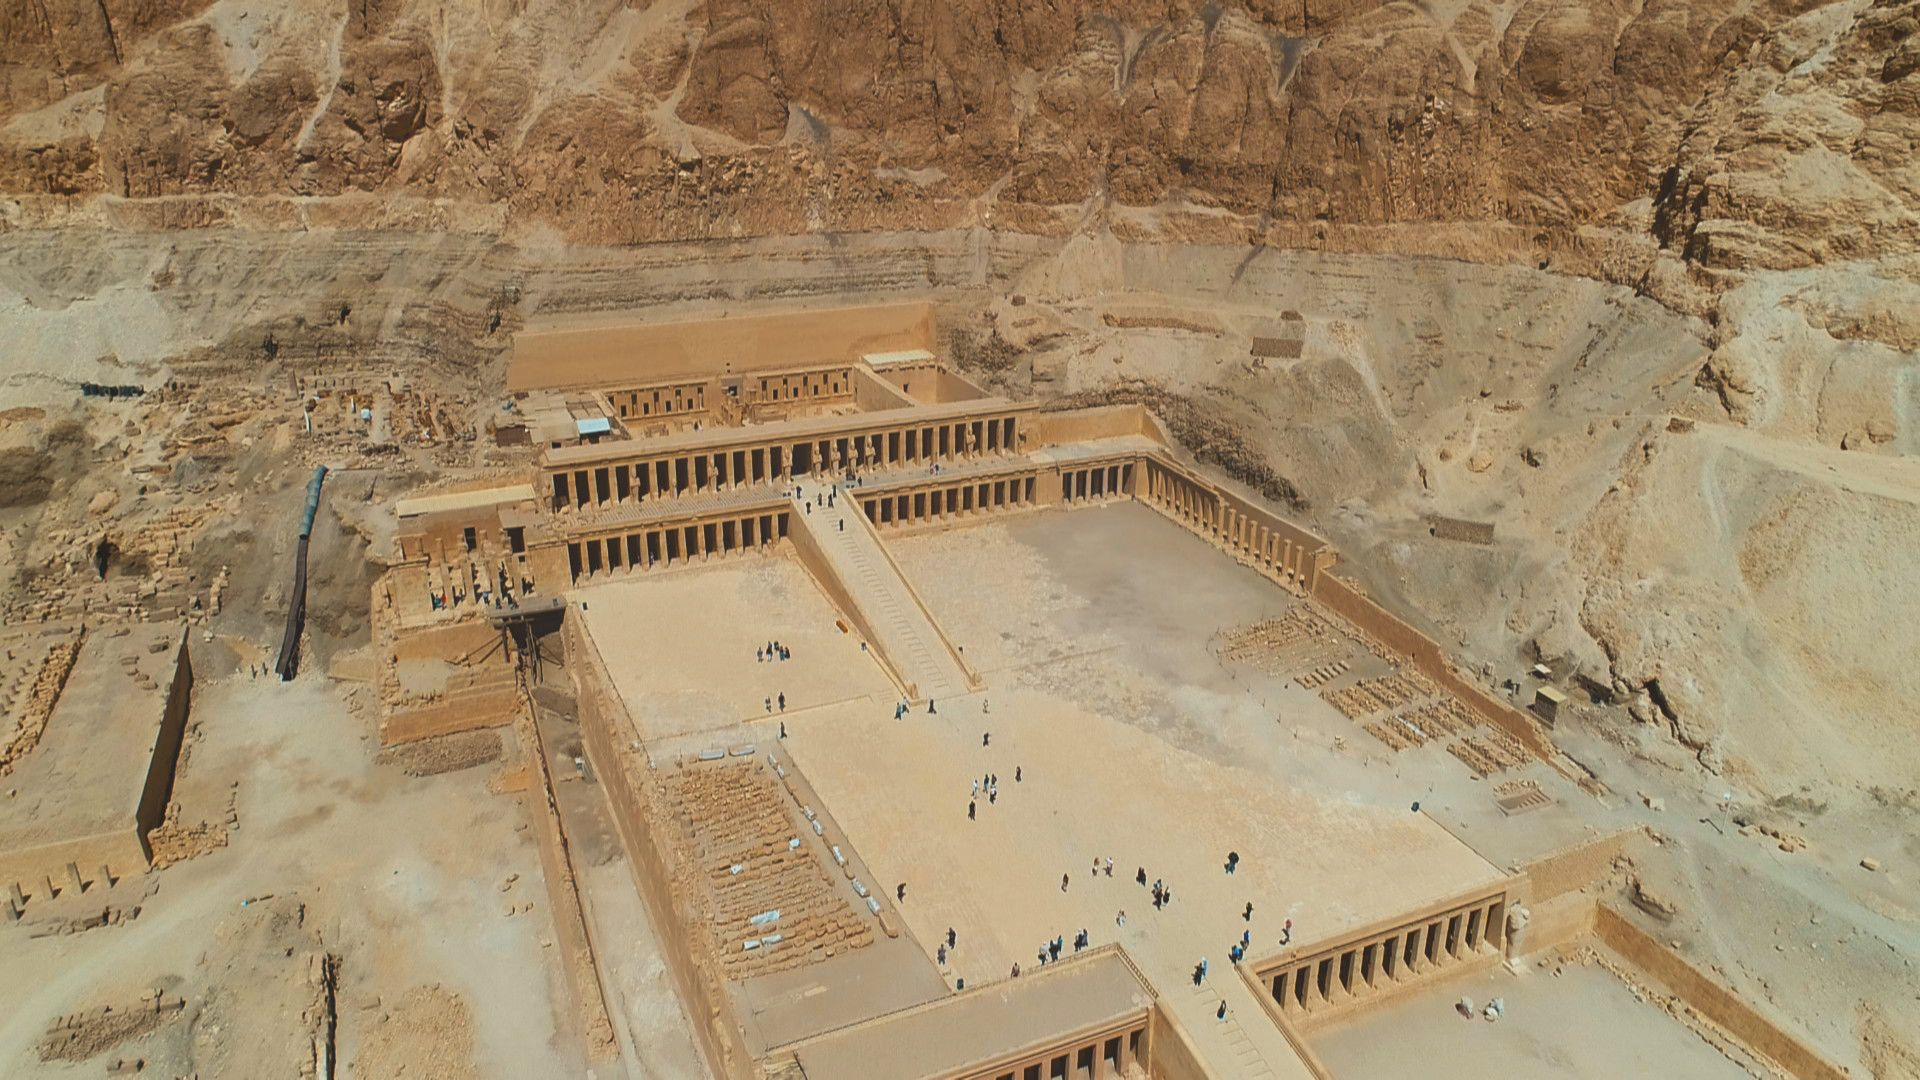 Aerial View of Hatshepsut's temple. This is from Lost Treasures of Egypt, season 3. [Photo of the day - September 2021]